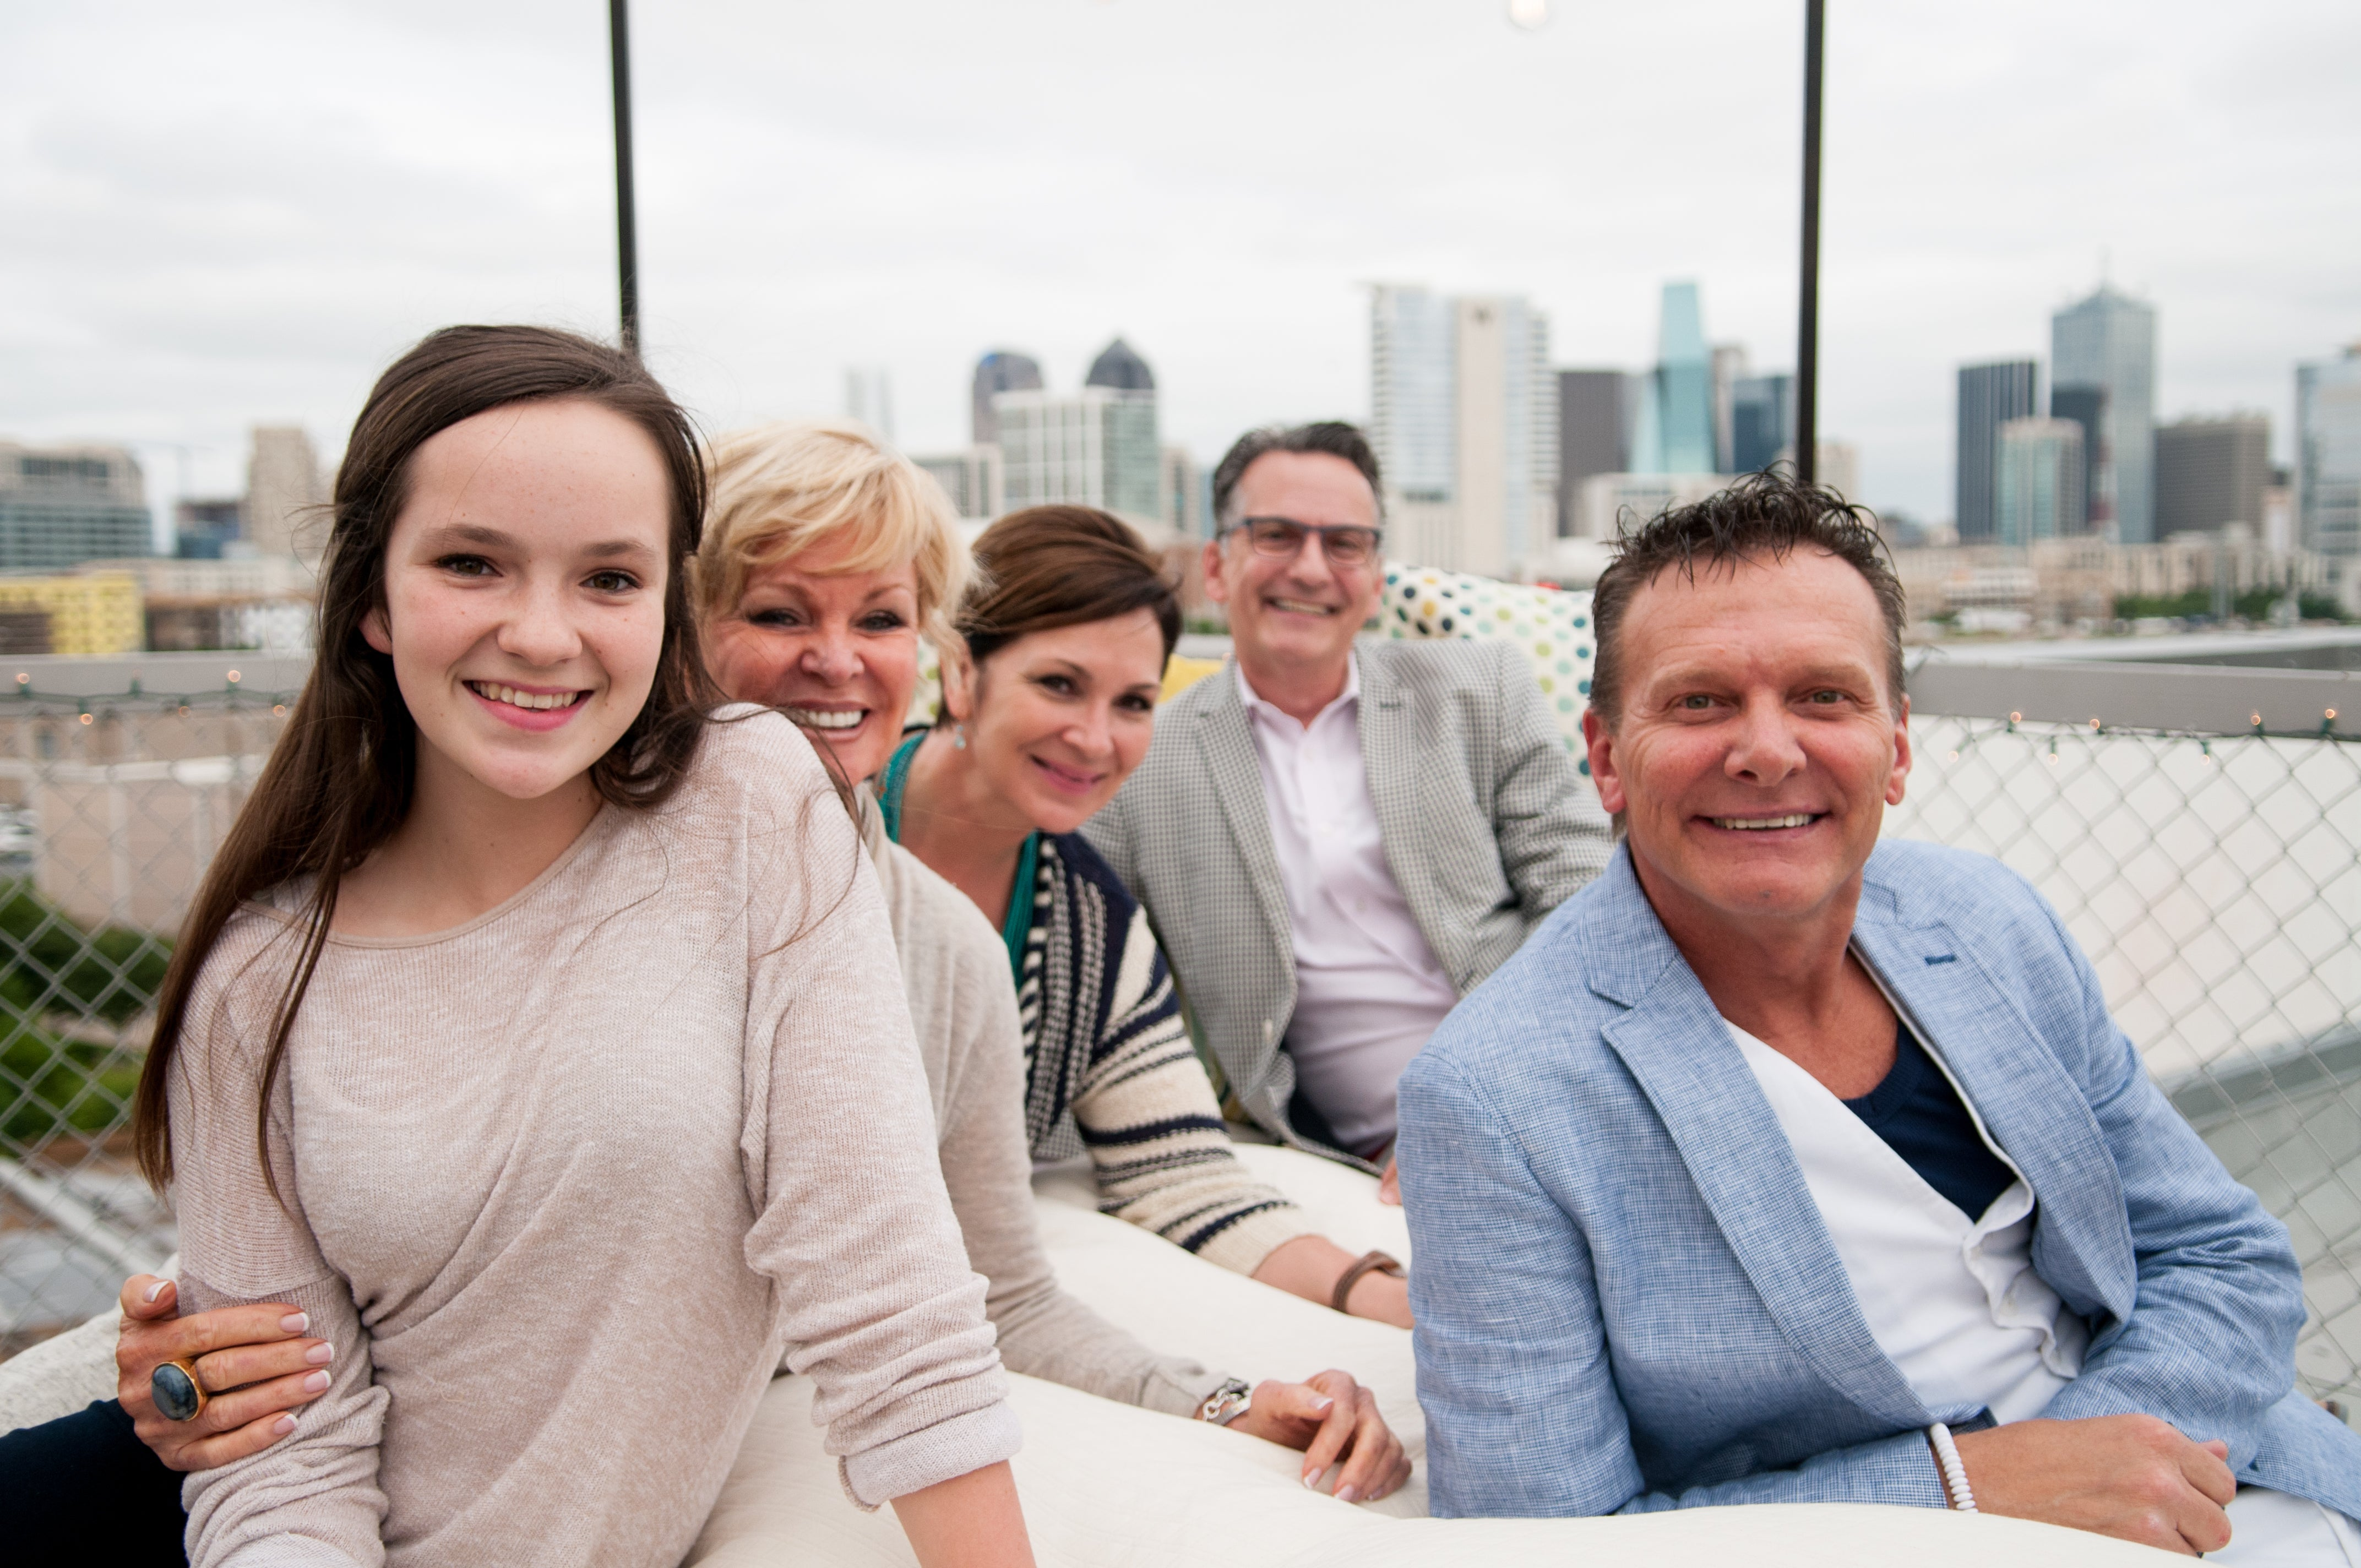 Guests pose on the rooftop in front of the Dallas skyline